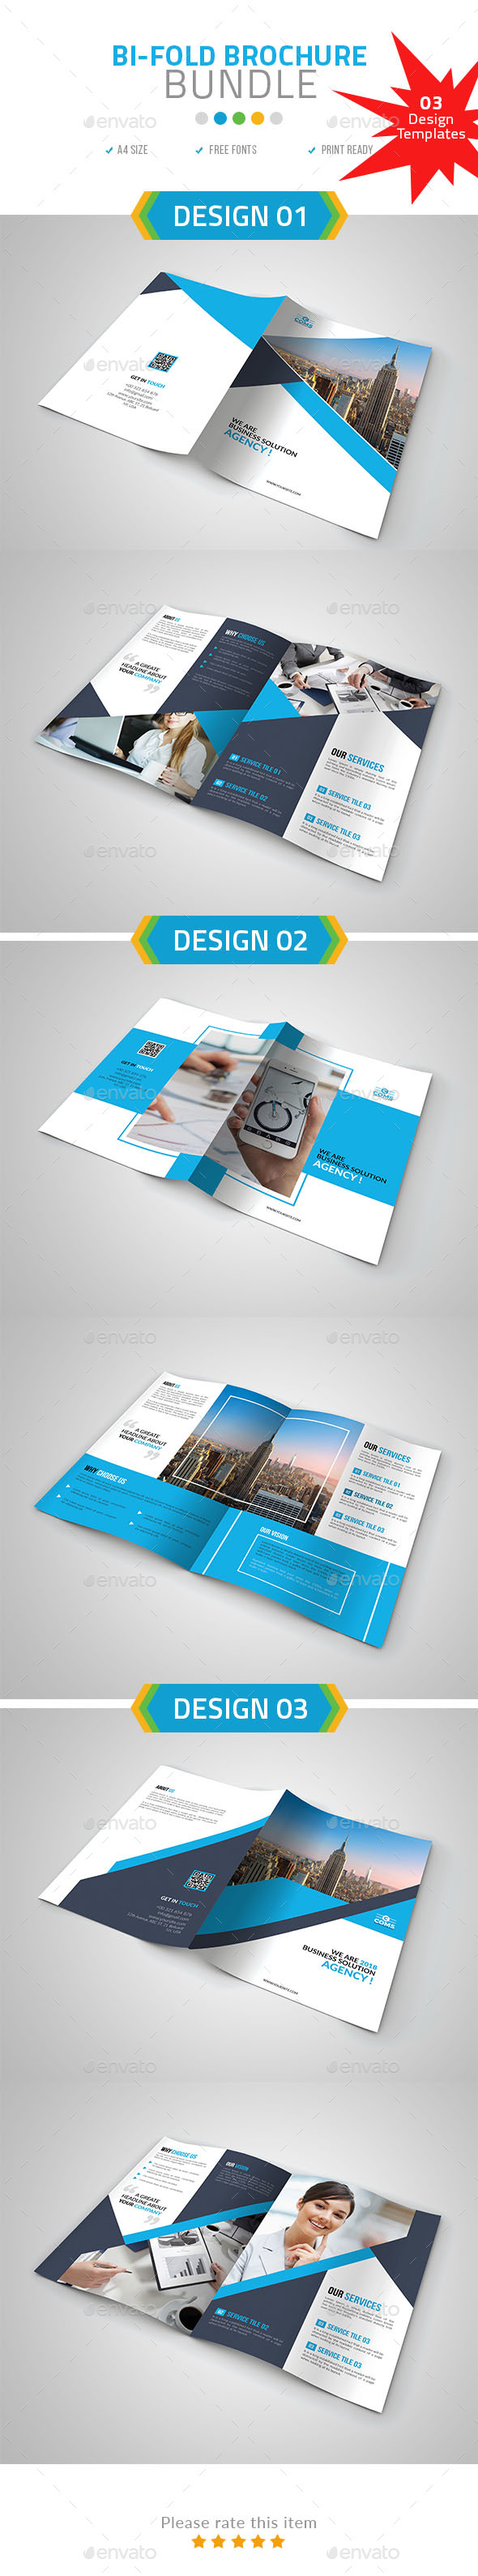 A4 Bi-Fold Brochure Bundle set 02 - Brochures Print Templates